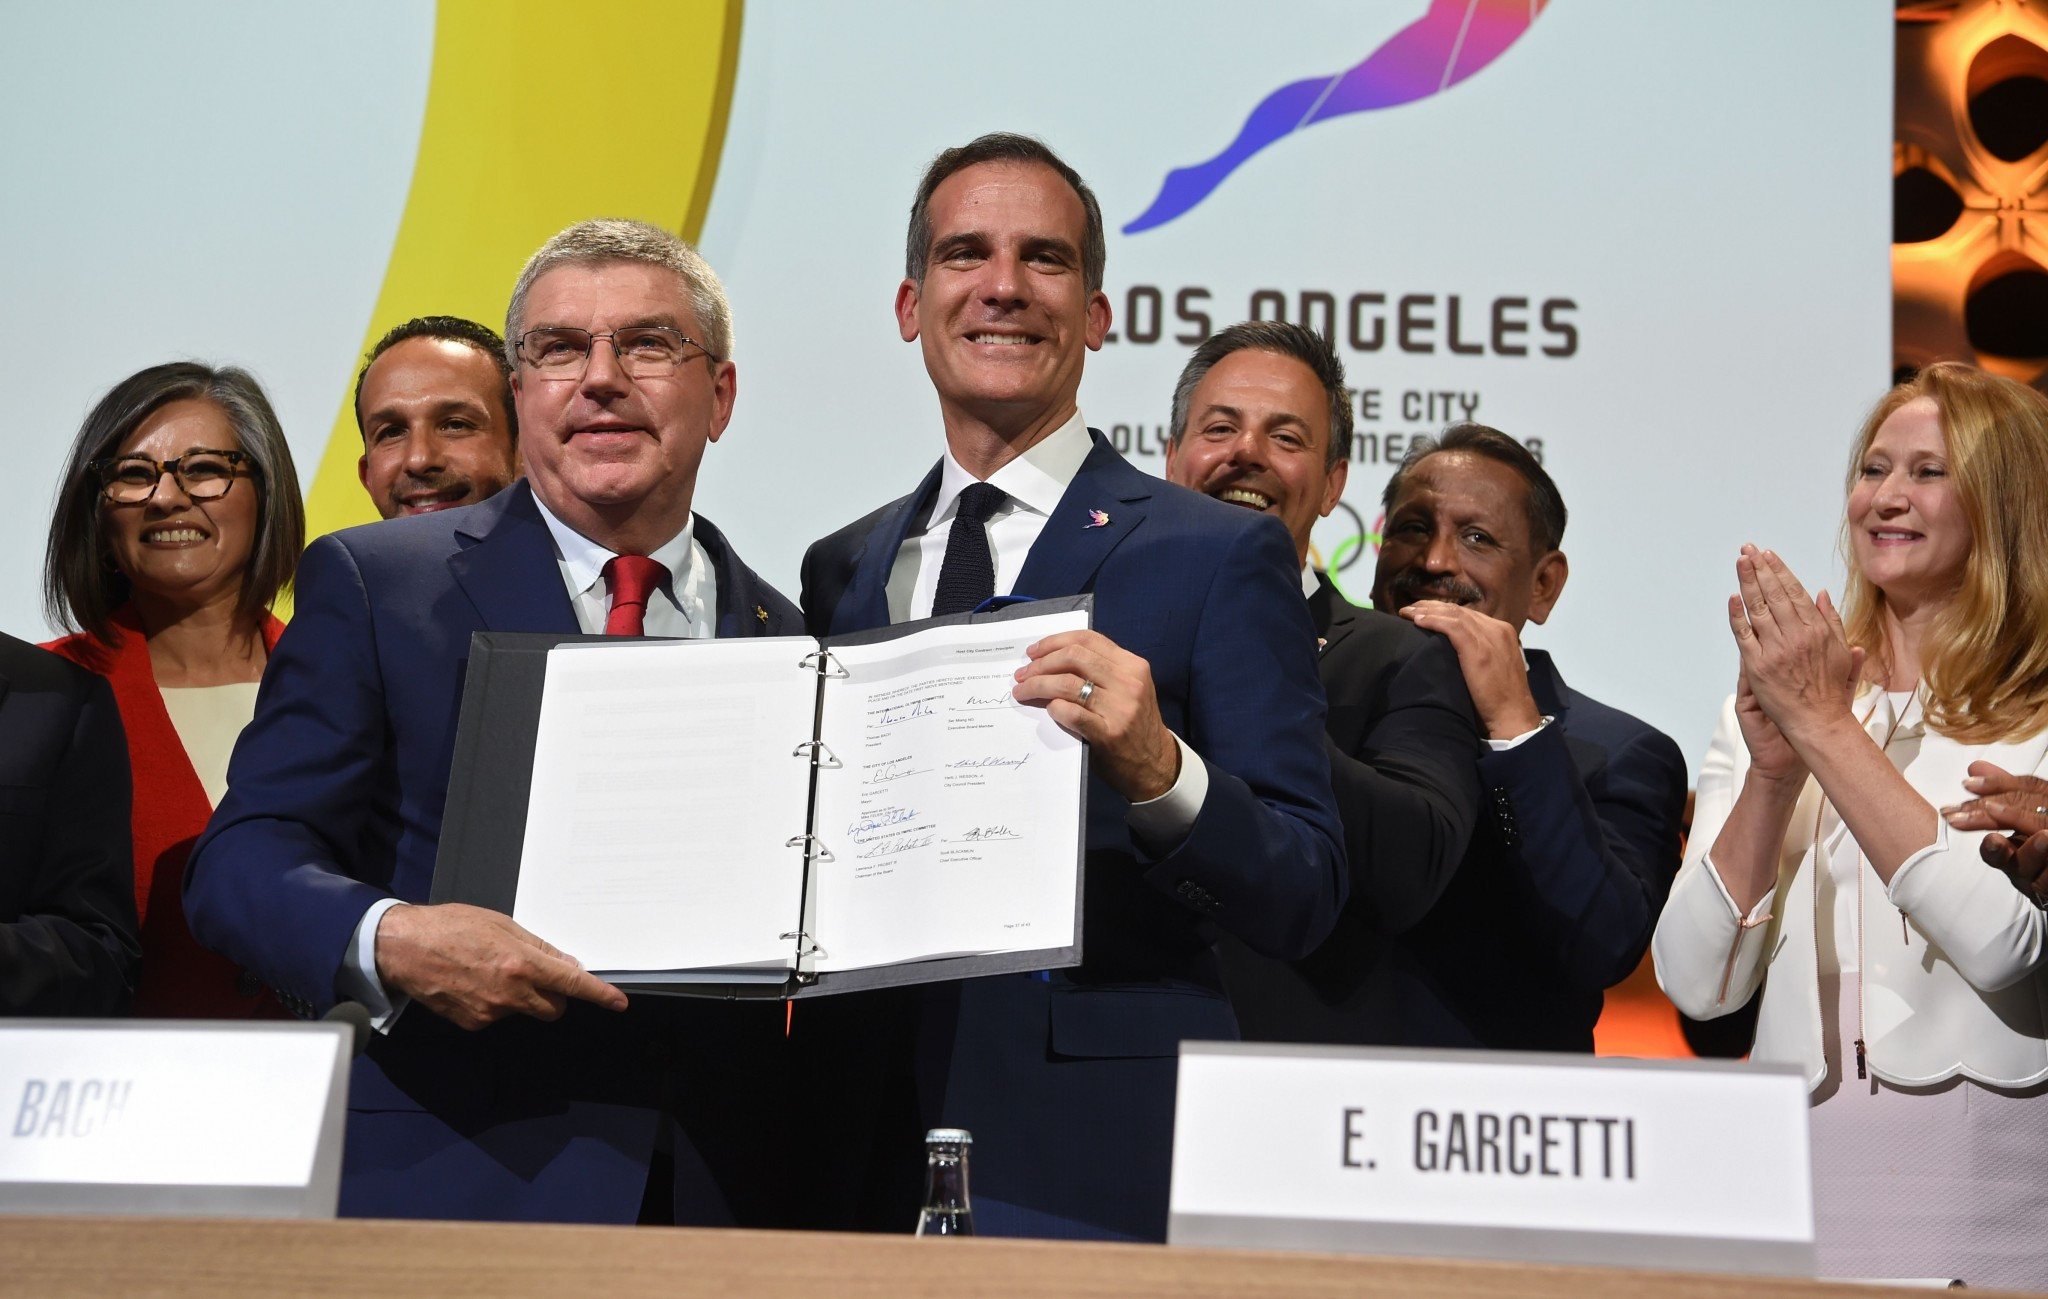 Los Angeles Mayor Eric Garcetti posed with the signed host city contract for 2028 ©Getty Images